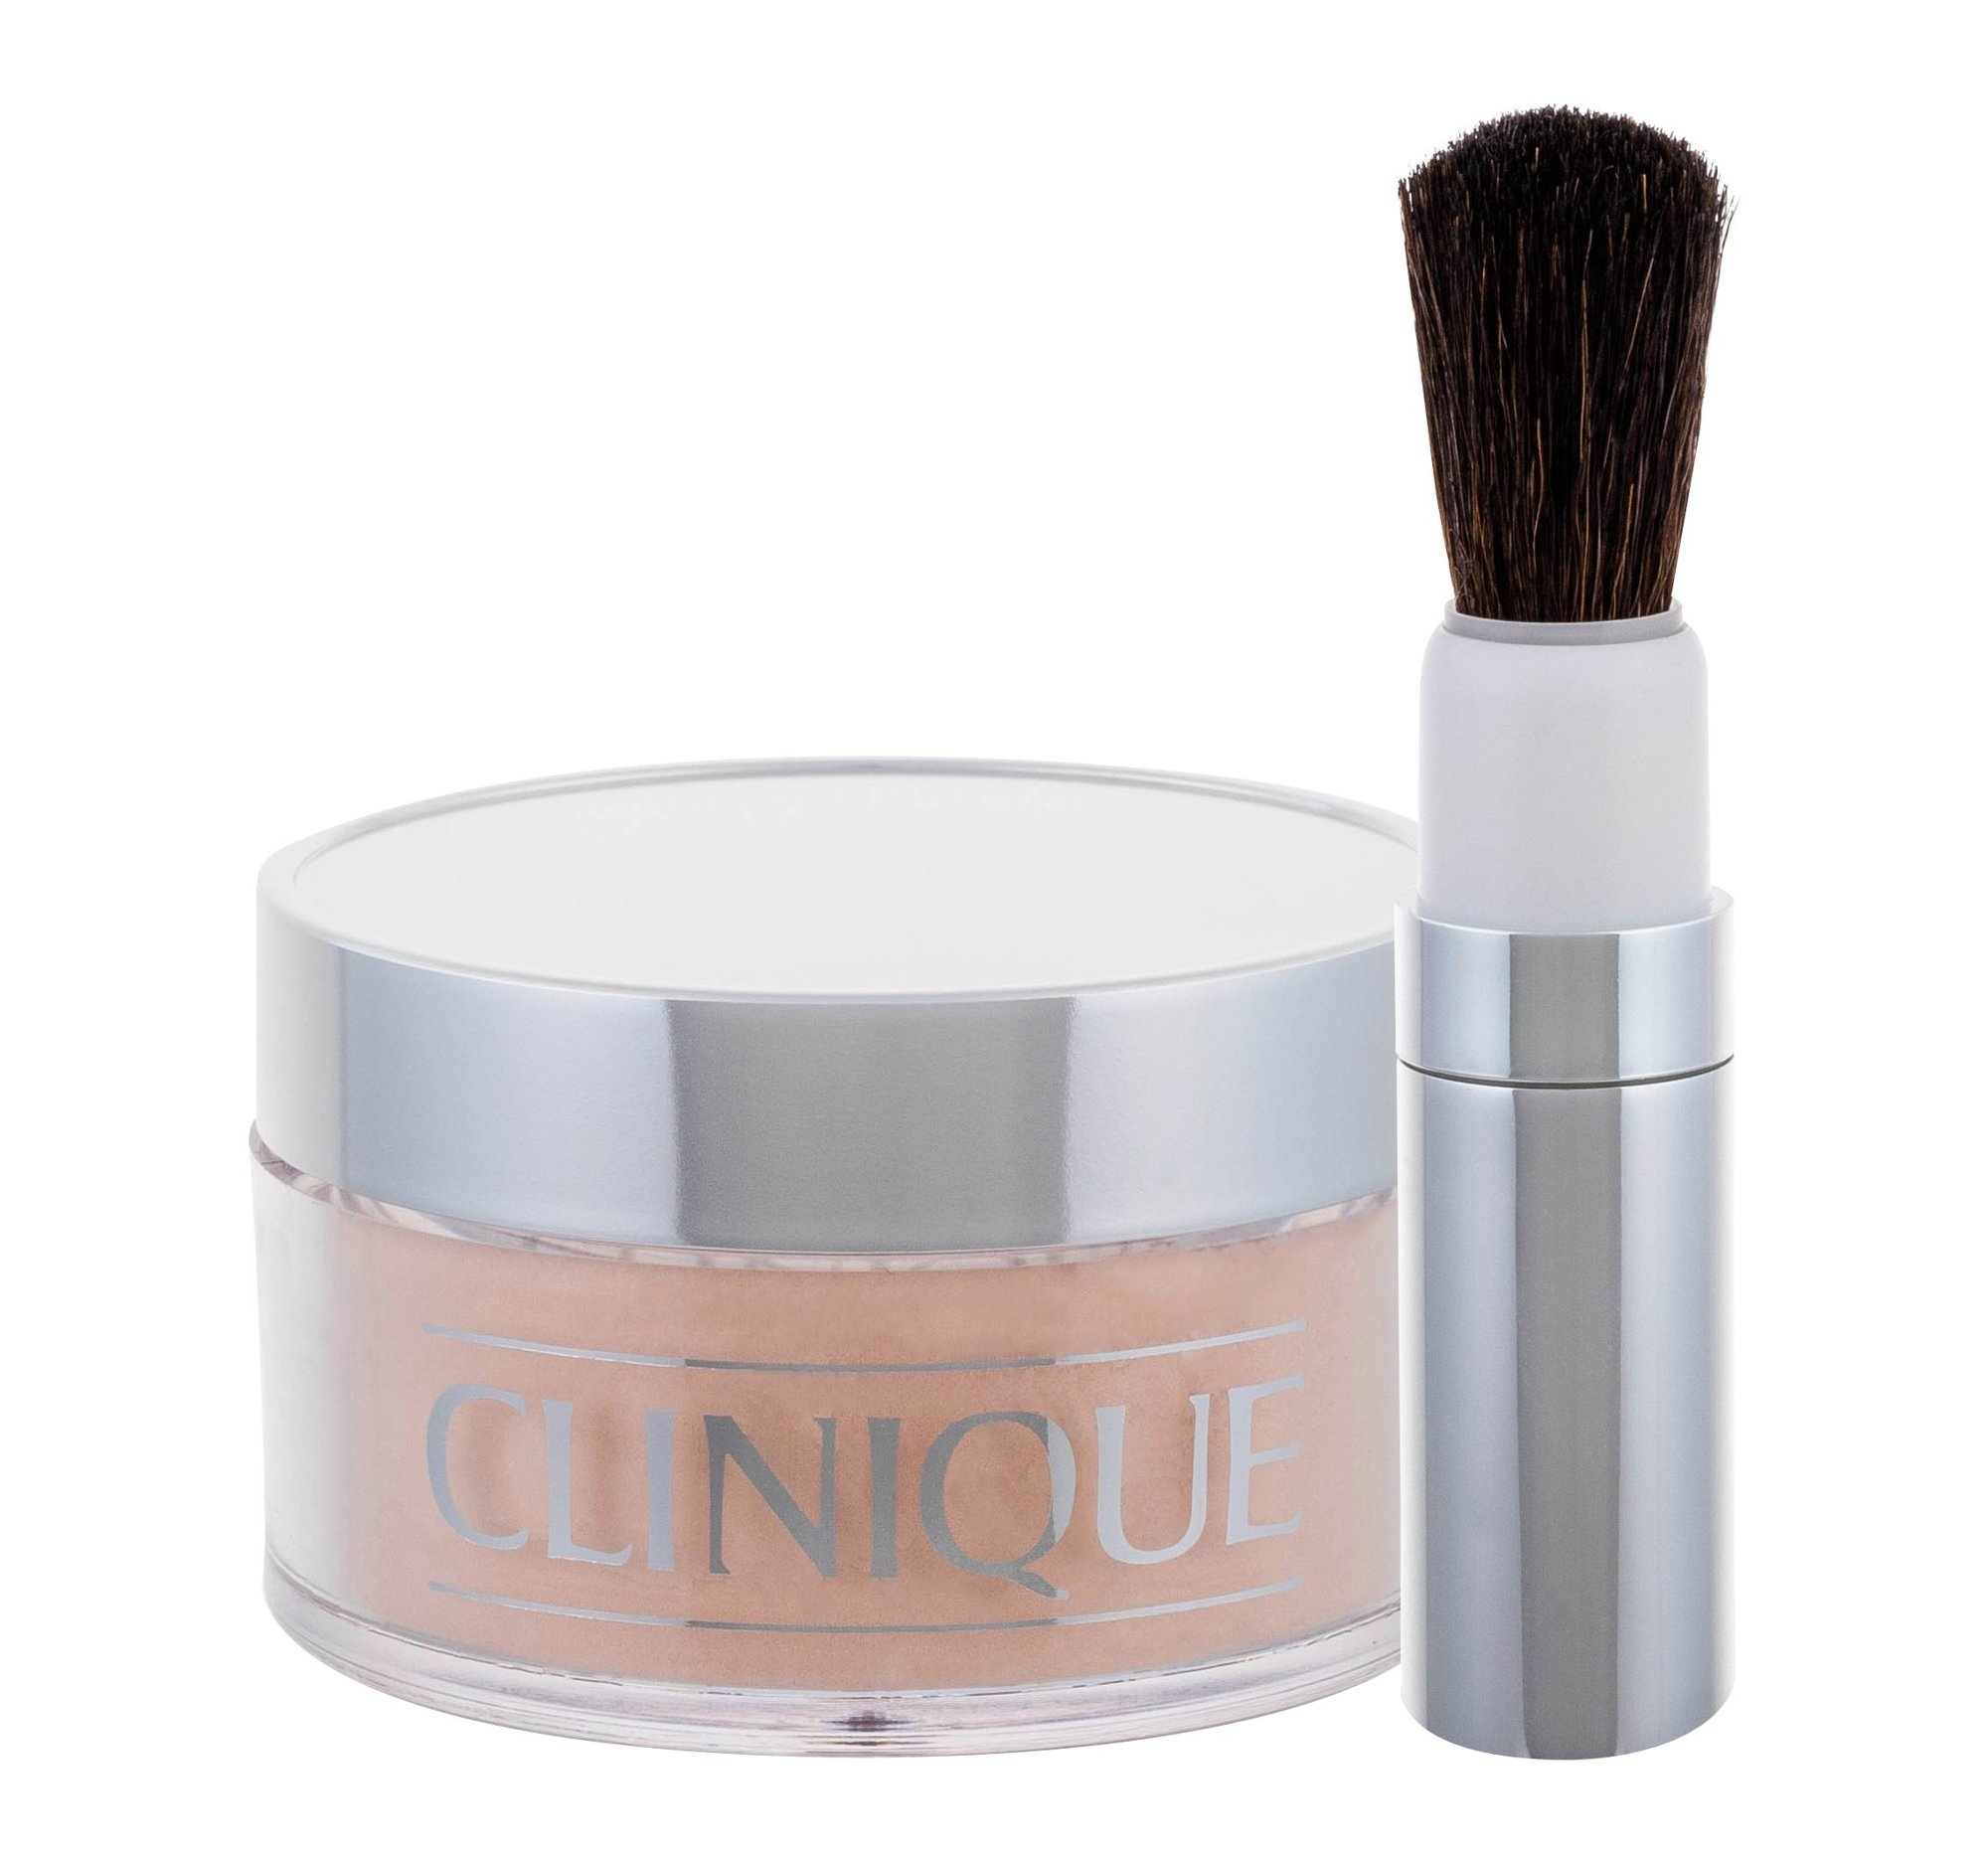 Clinique Blended Cosmetic 35ml 08 Transparency Neutral Face Powder And Brush